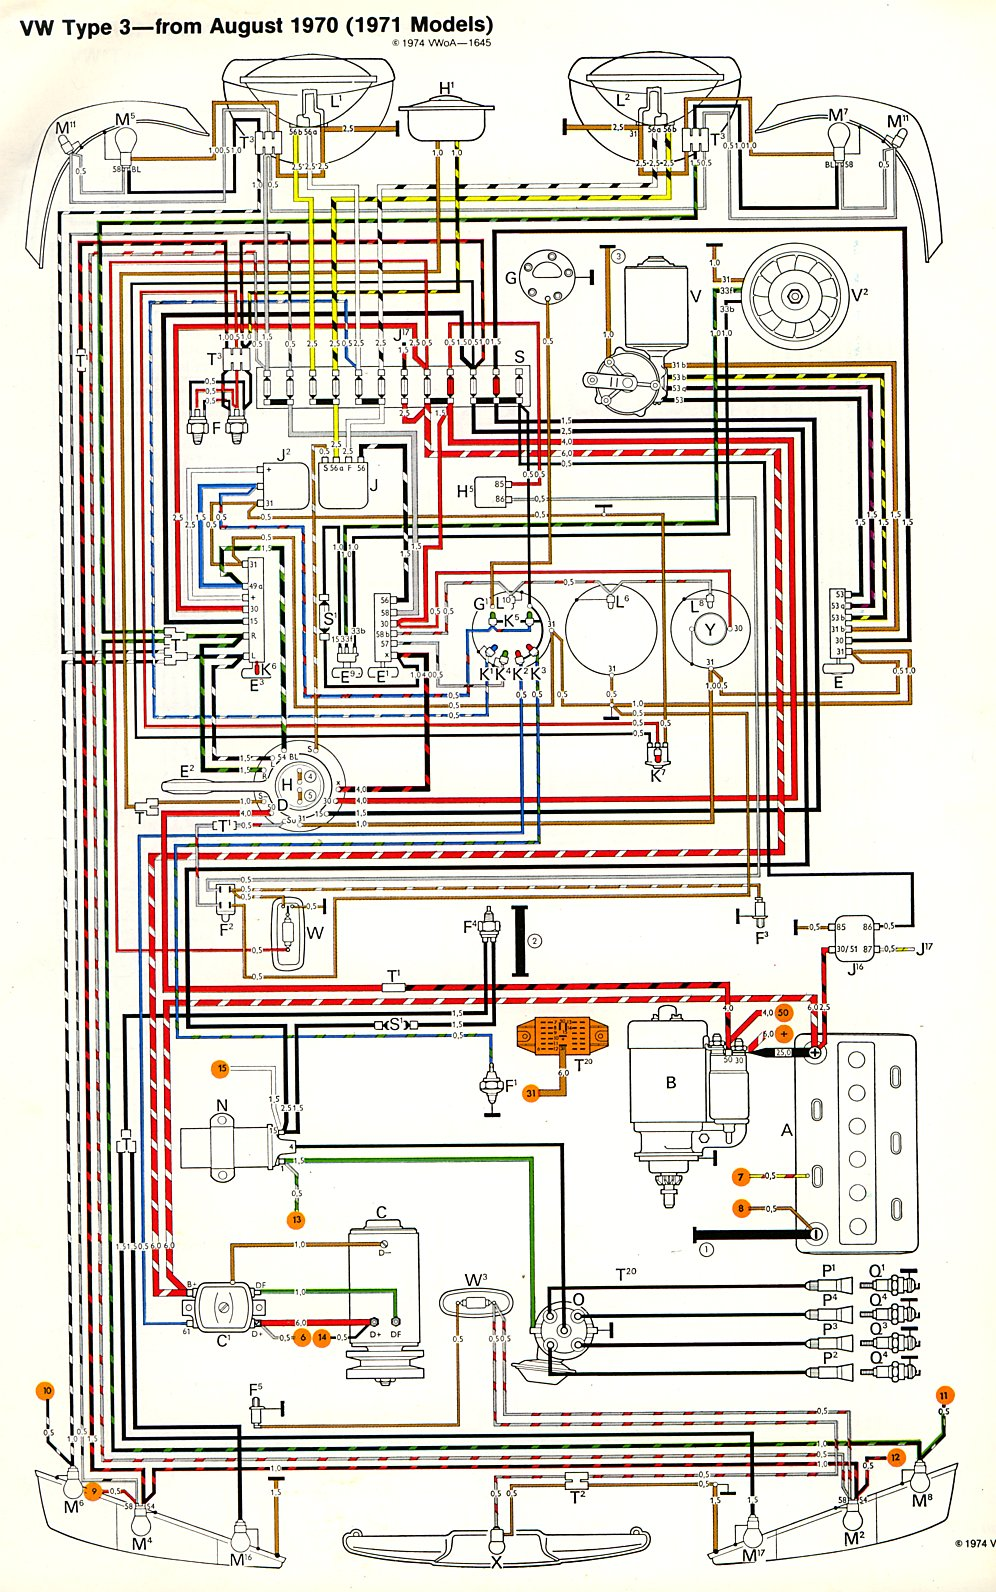 type 3 wiring diagrams. Black Bedroom Furniture Sets. Home Design Ideas